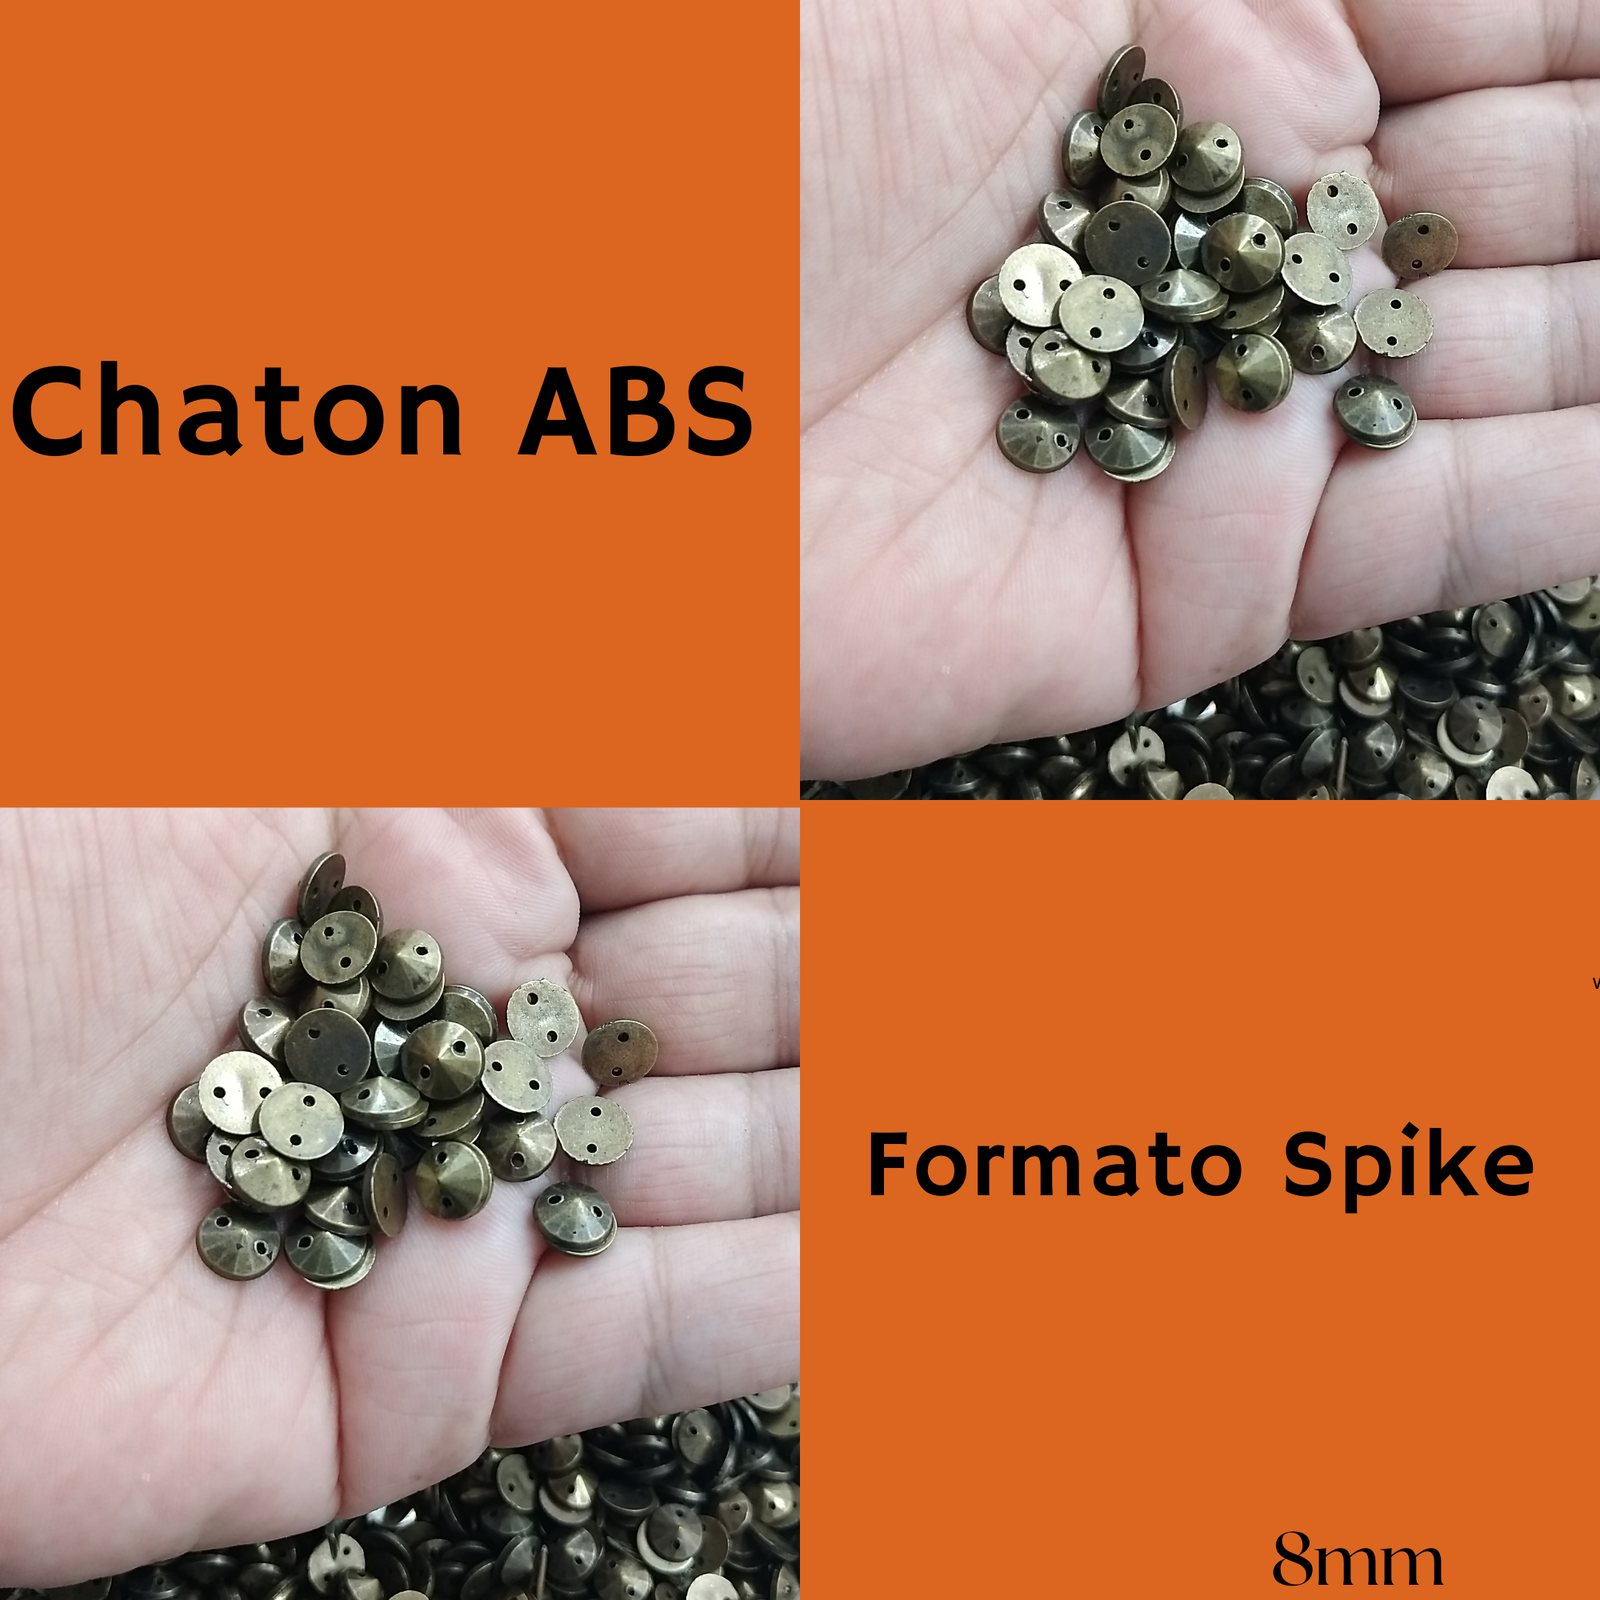 Chaton ABS Formato Spike 8mm c/250g